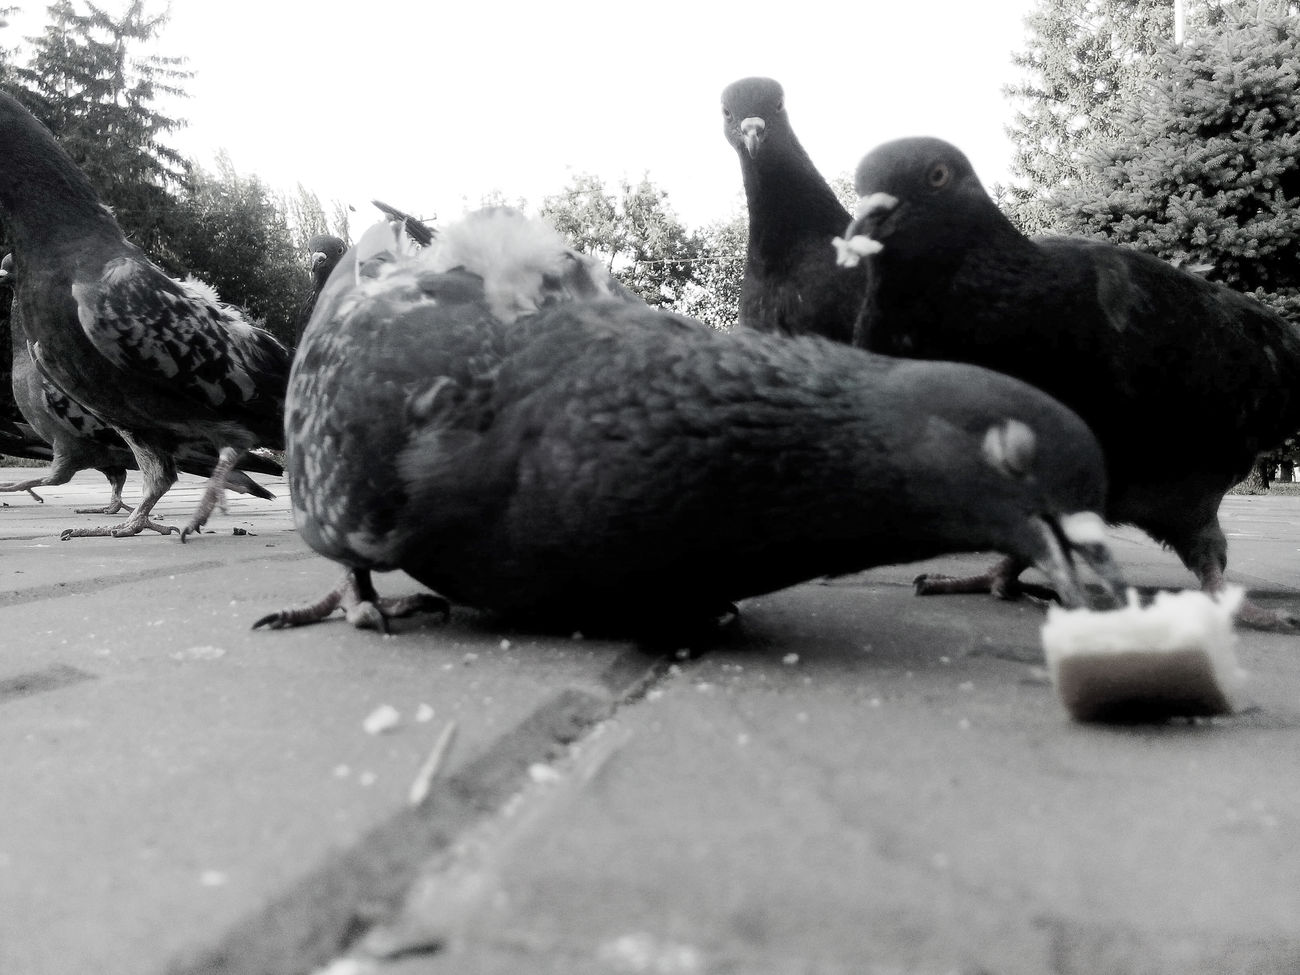 Animal Themes Bird Day Outdoors Pigeons Square голуби город птицы площадь Close-up Rostov-on-Don No People Animal City Black And White Photography Monocrome